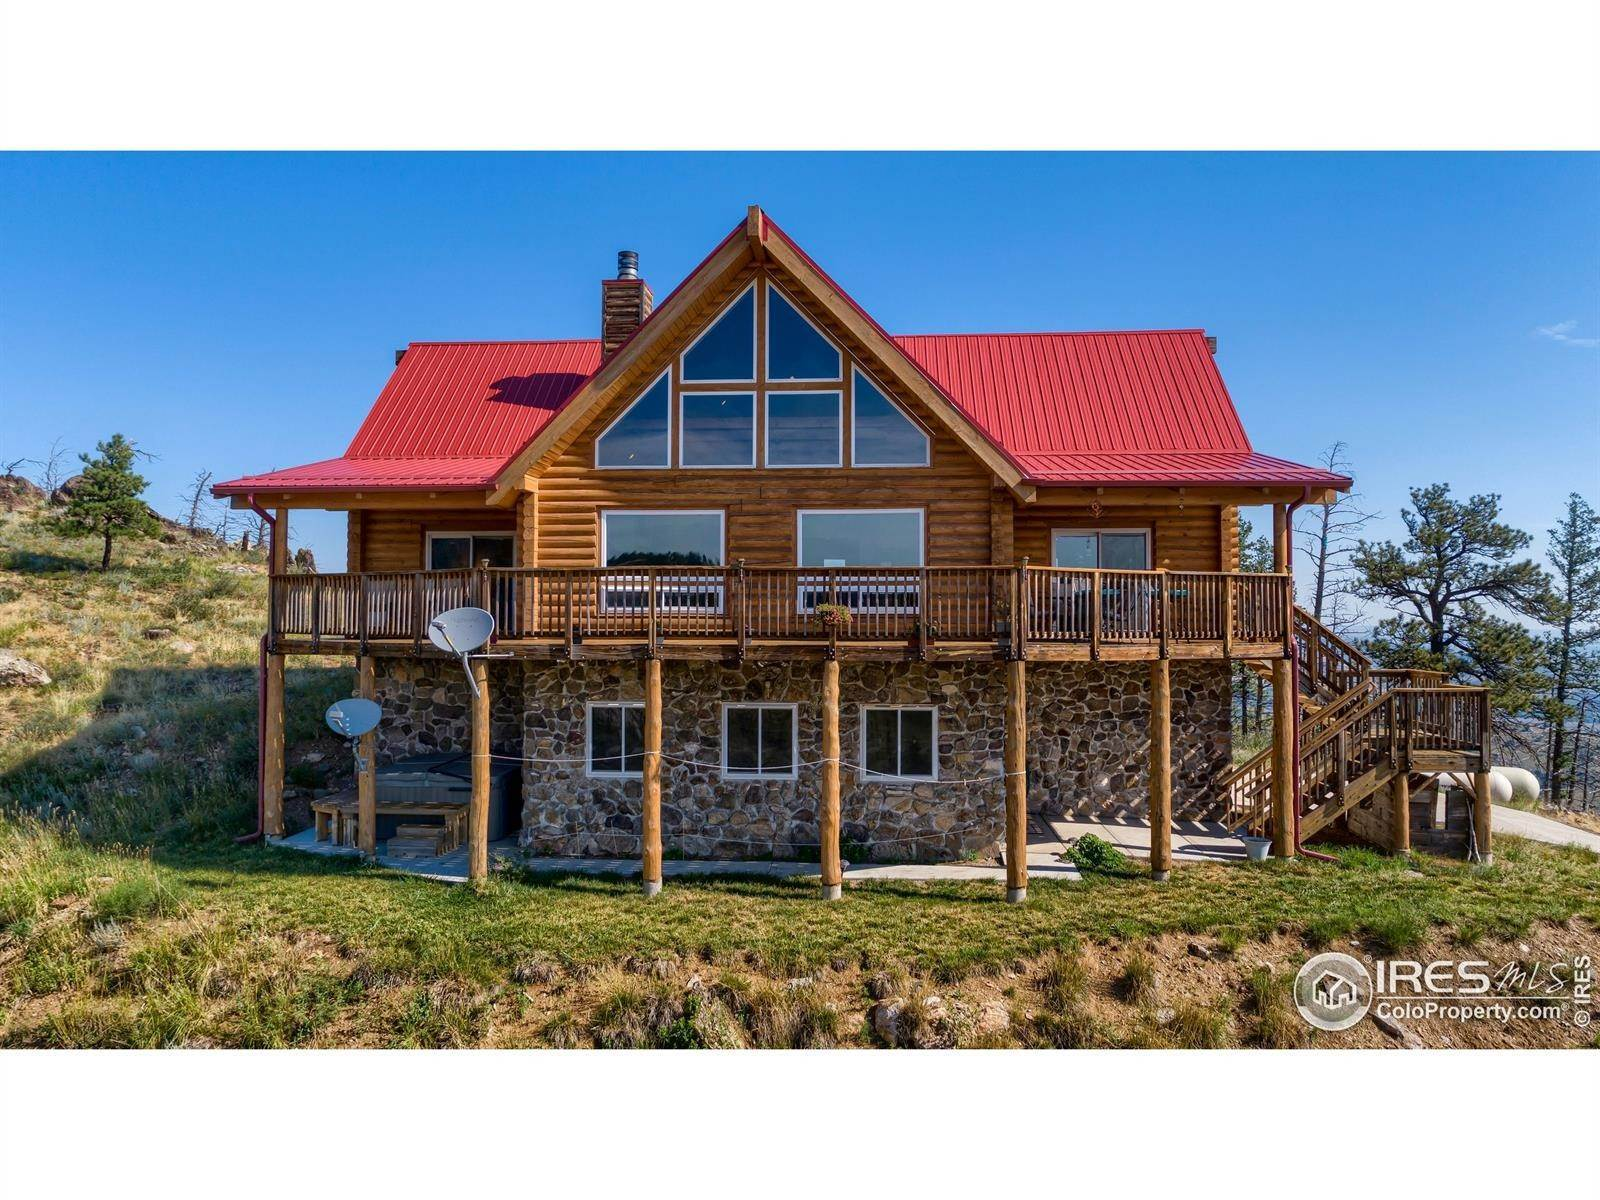 Single Family Homes for Sale at 1234 Saddle Ridge Road Bellvue, Colorado 80512 United States